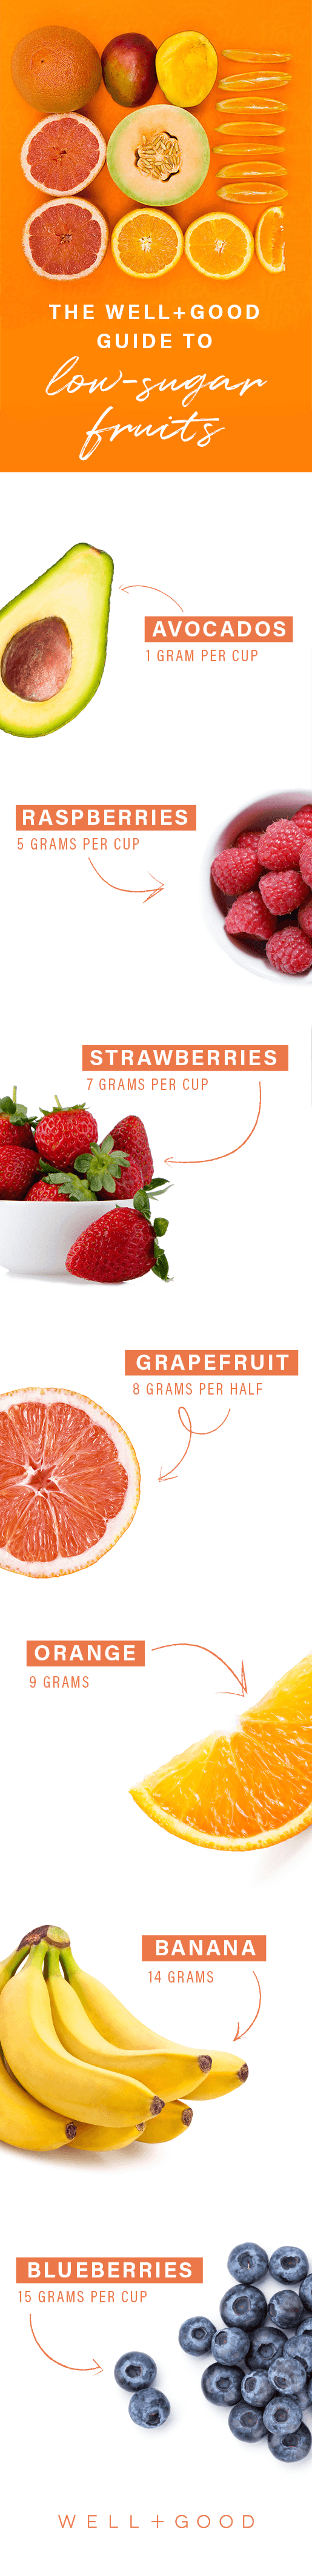 Thumbnail for The best fruits to eat if you want to avoid a sugar high